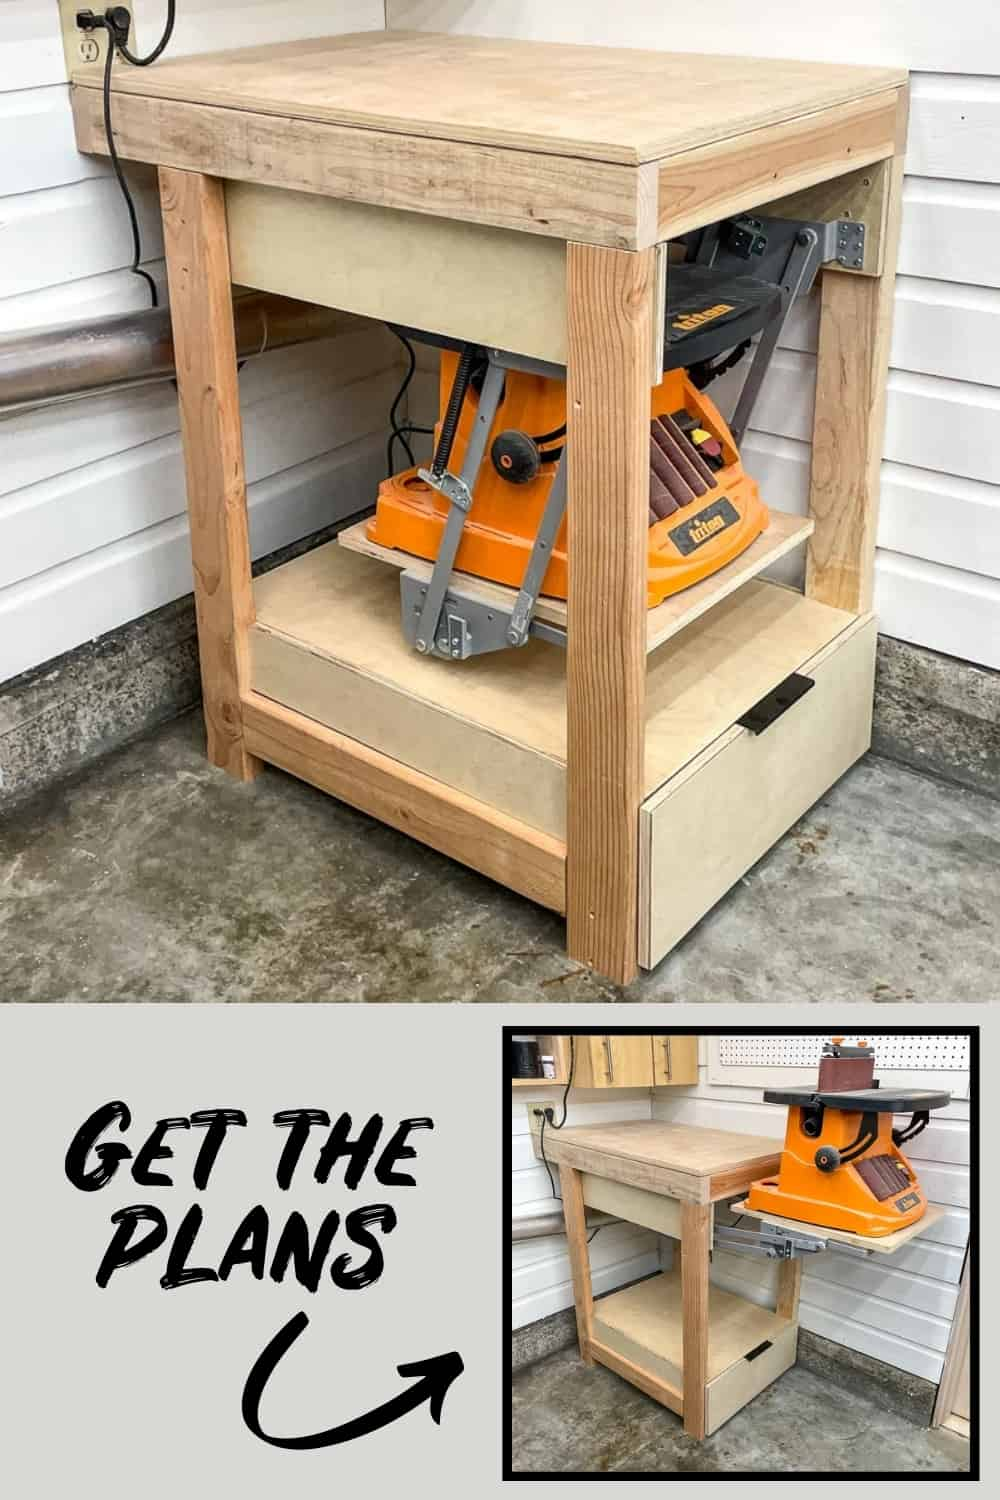 Flip up tool stand with plans